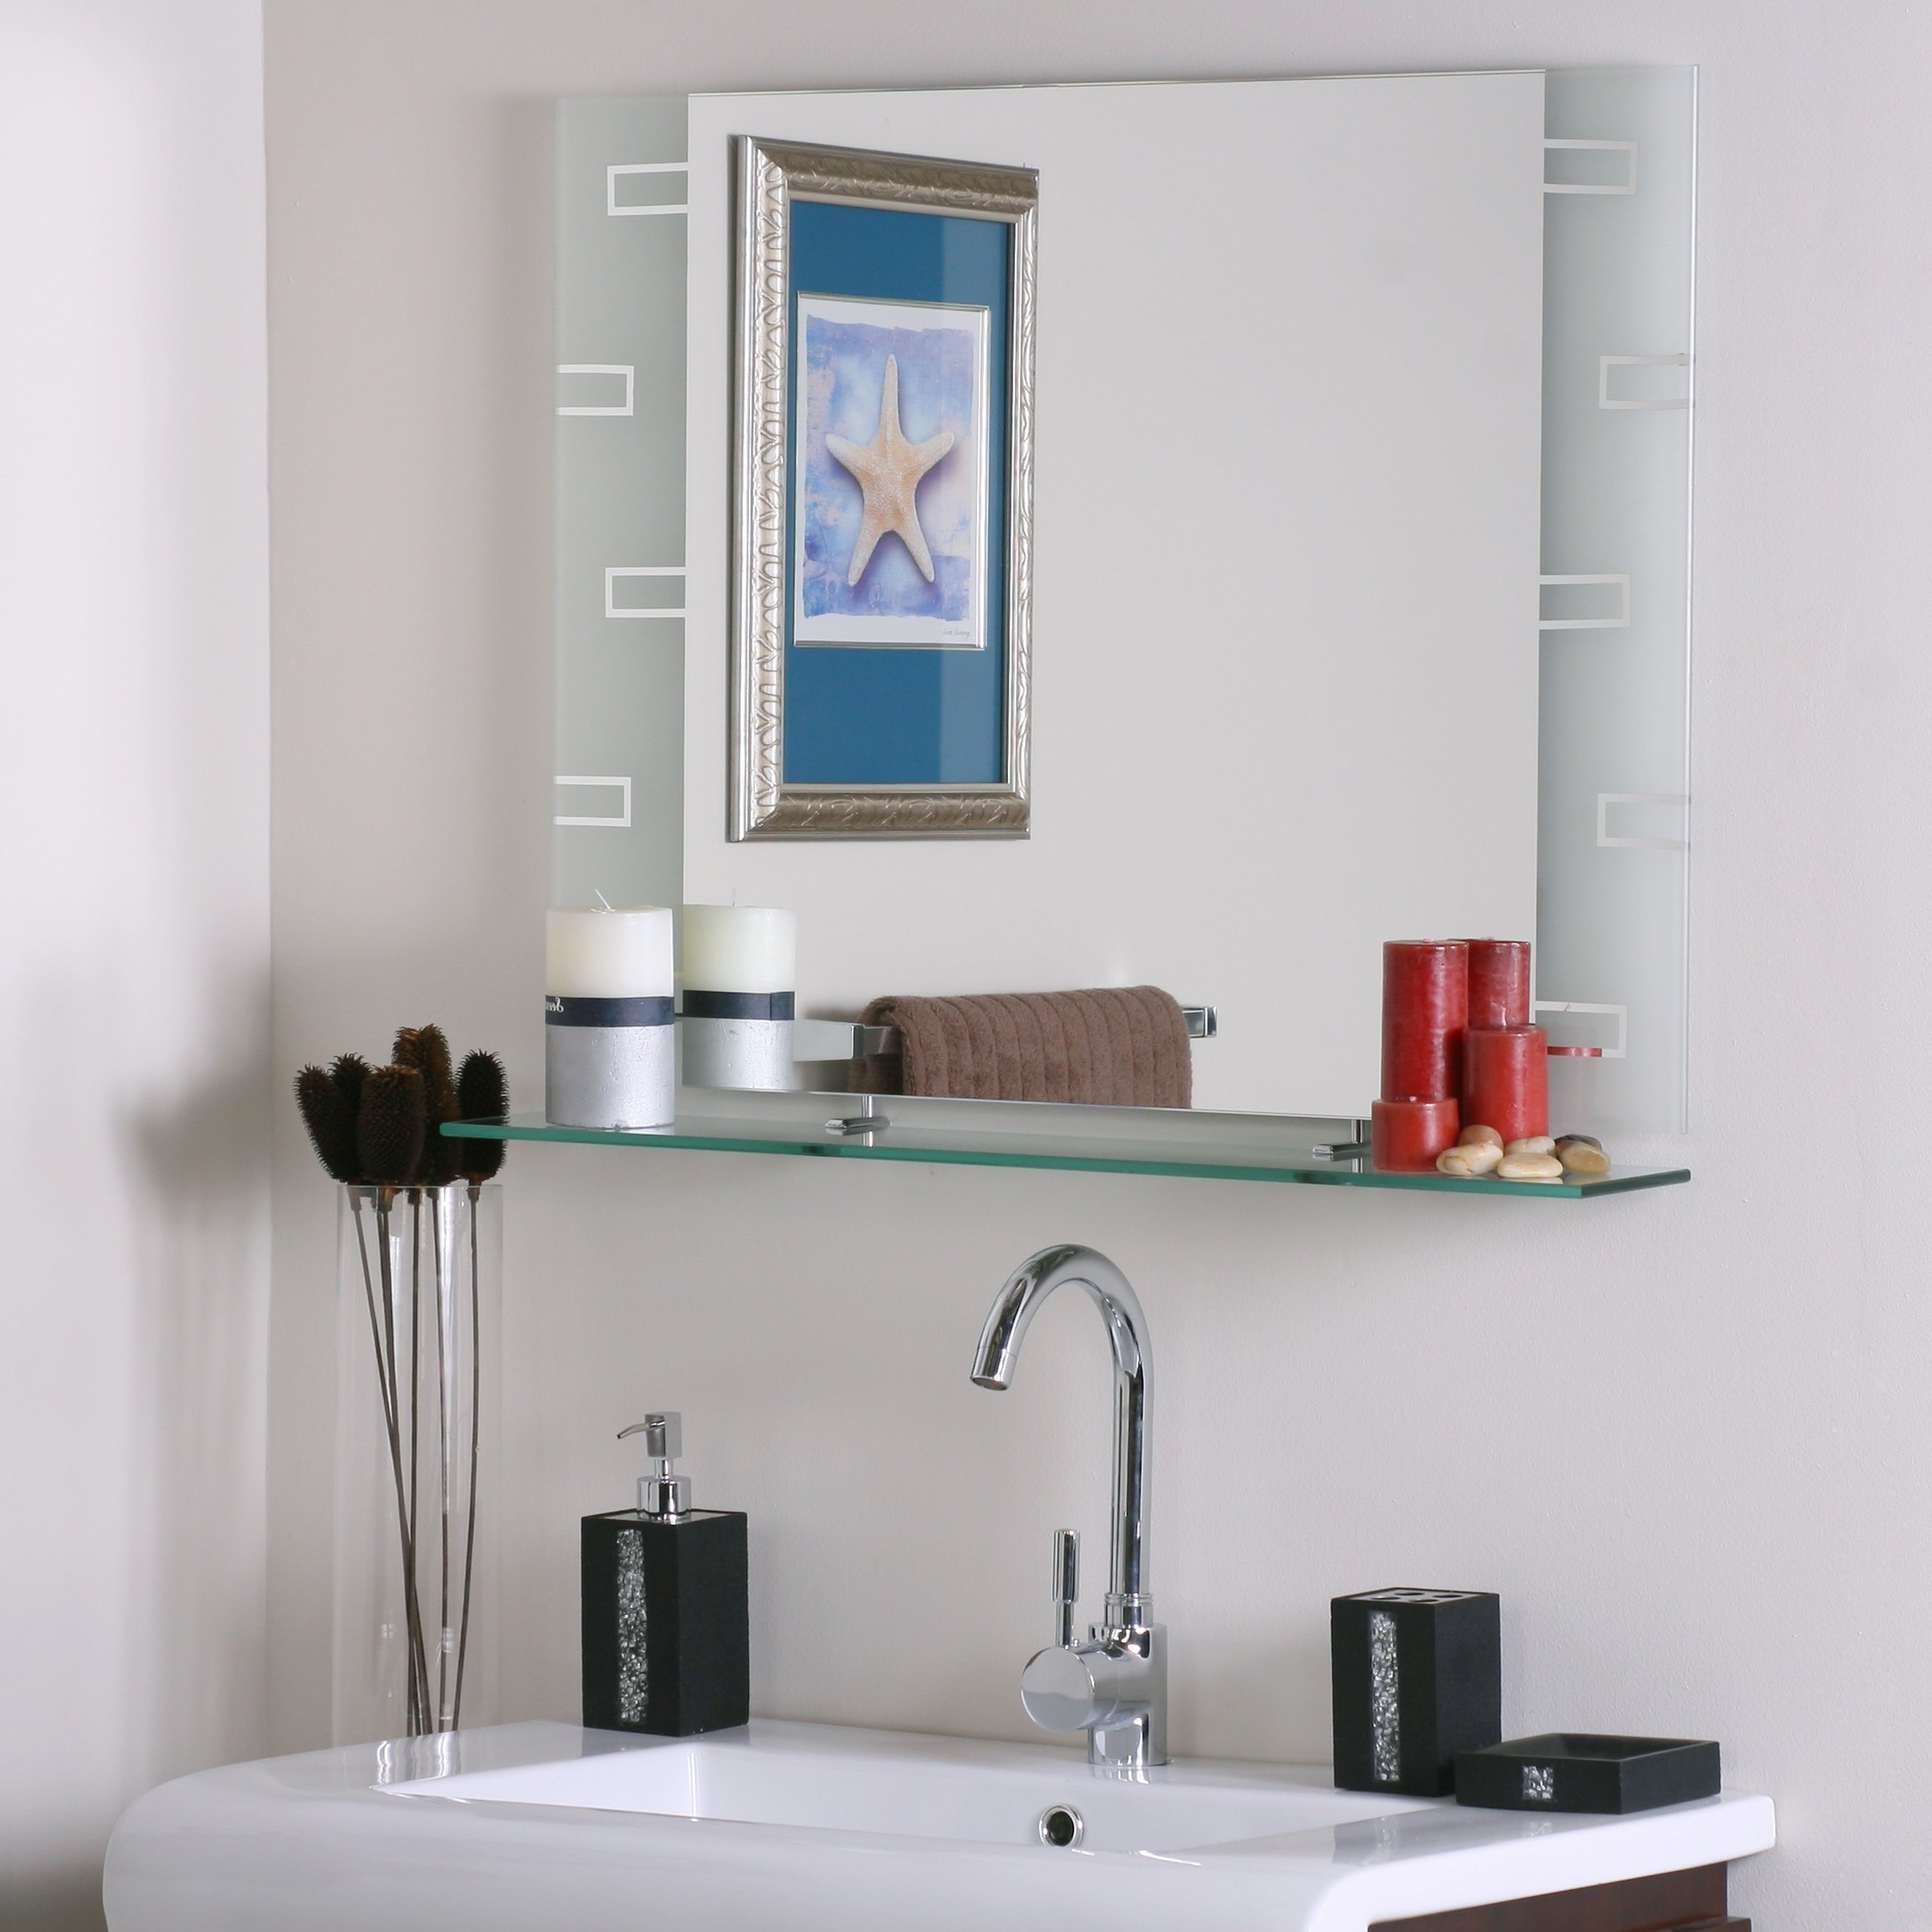 Wyona Frameless Wall Mirror With Shelf Within Well Liked Bathroom Wall Mirrors (View 20 of 20)